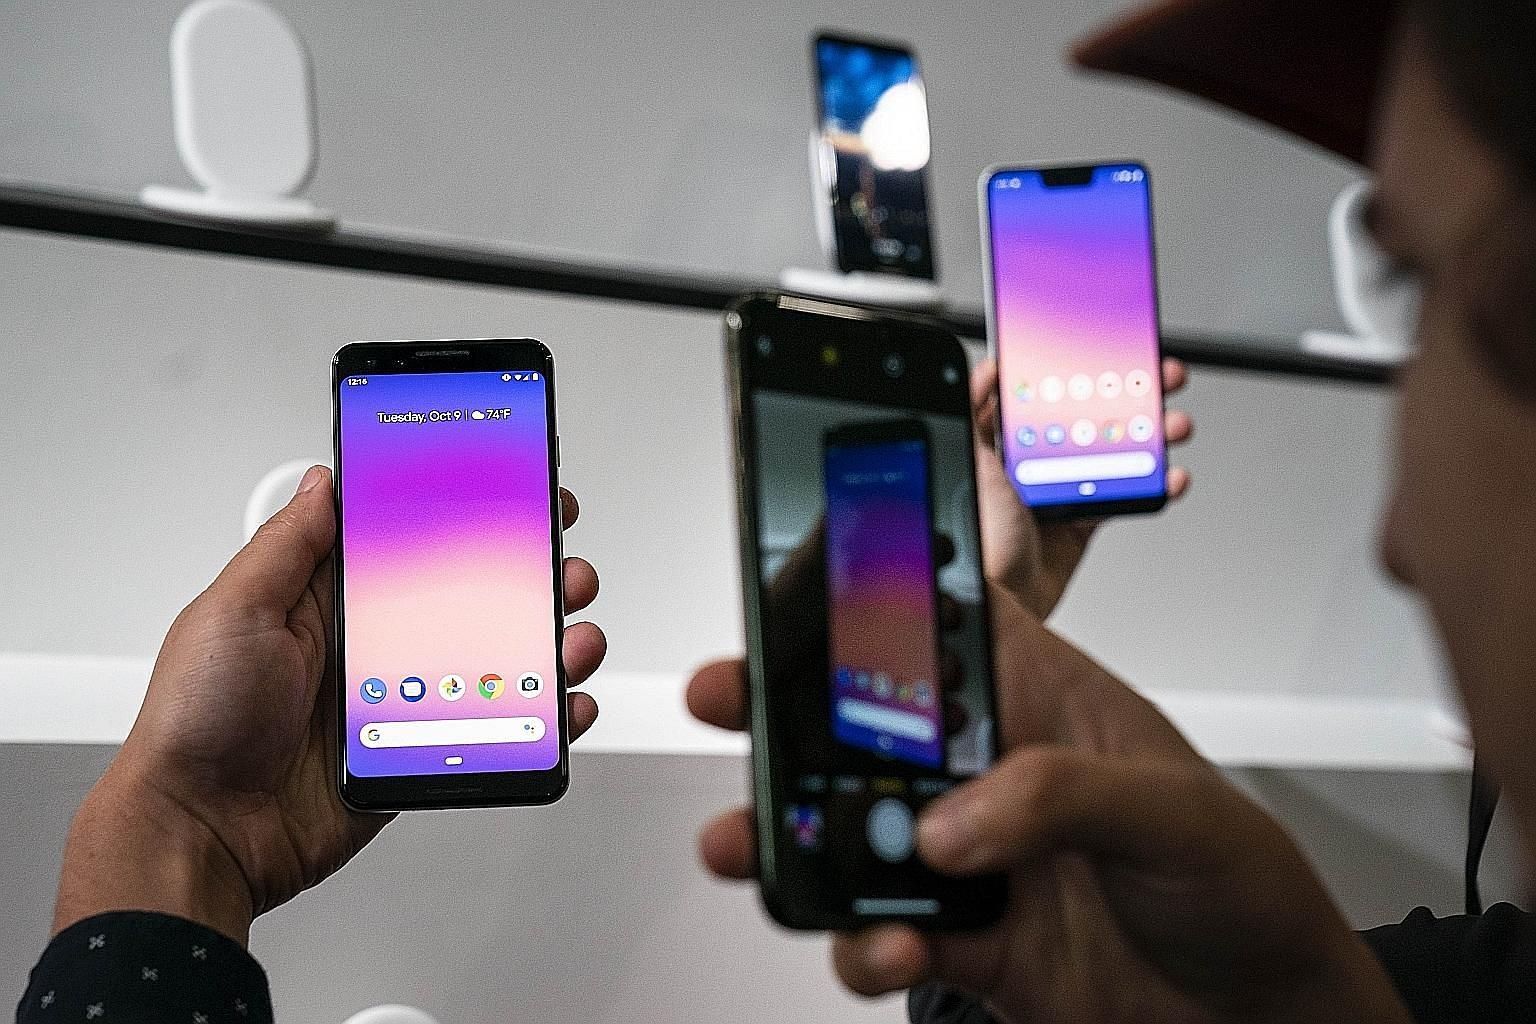 The new Pixel 3 smartphone at a Google event on Tuesday in New York. The phones go on sale from Oct 18 in the US and Nov 1 elsewhere.